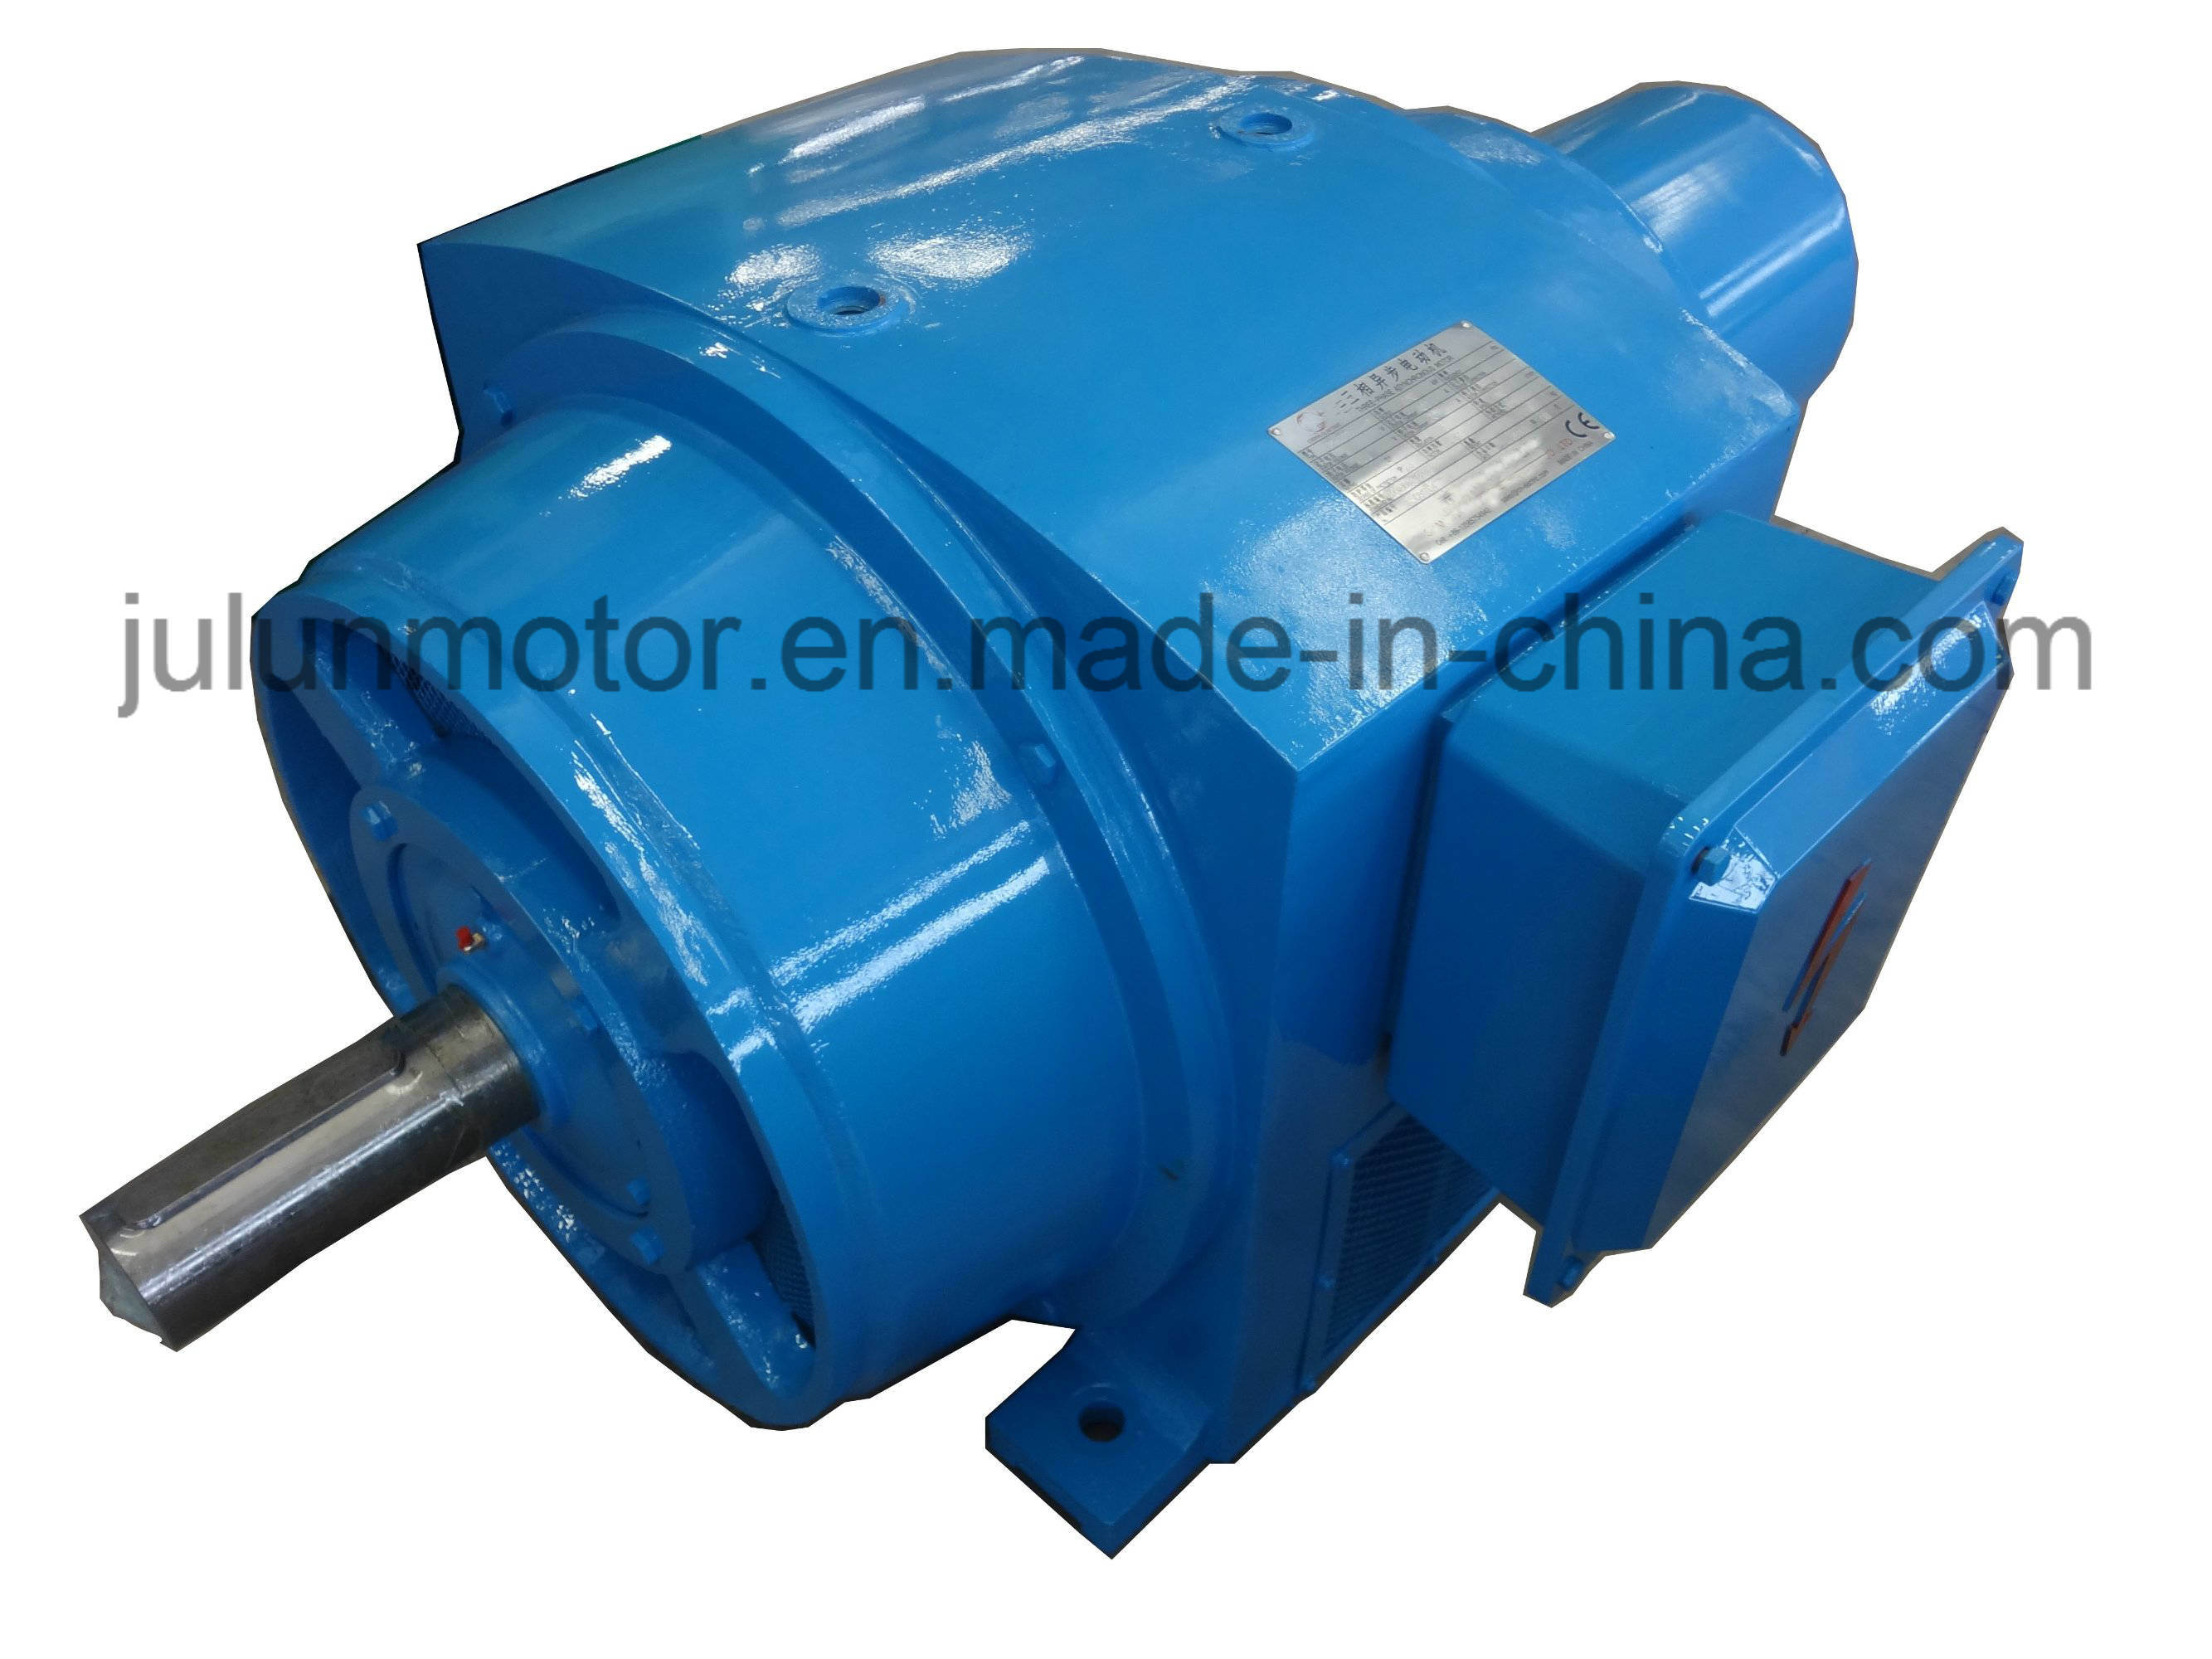 China Jr Series Three Phase Induction AC Electric Motor Wound Rotor ...